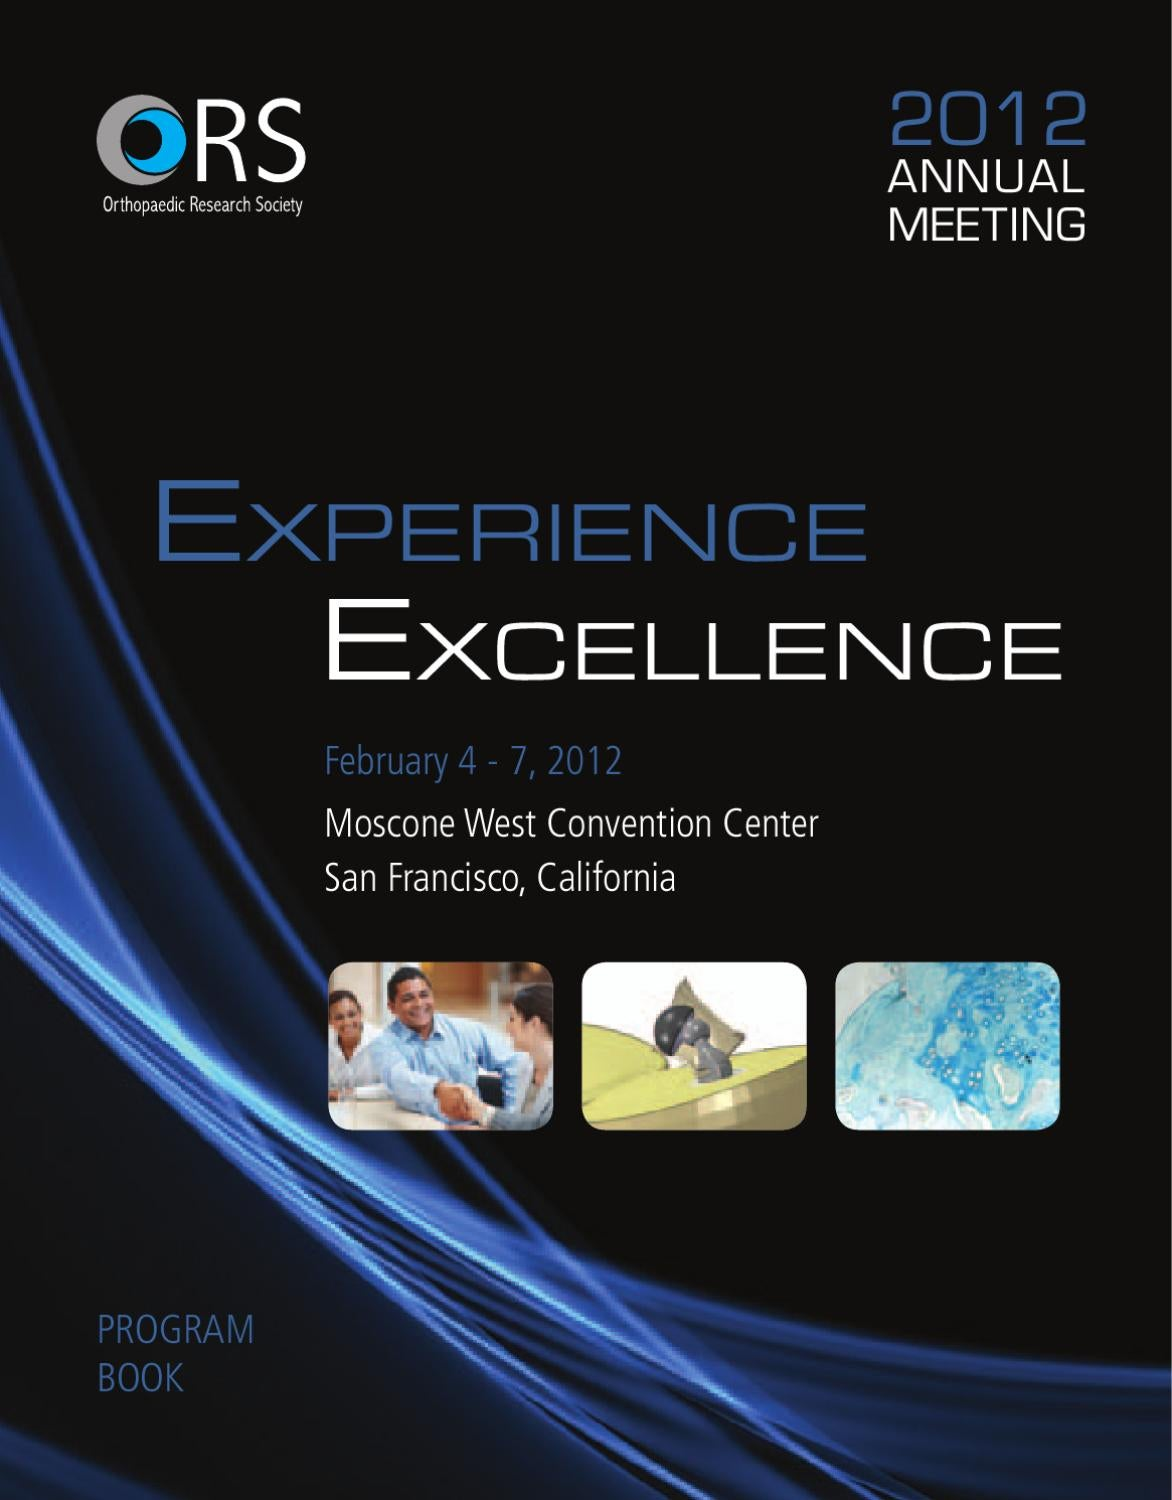 835d991dbf2 2012 ORS Annual Meeting Program Book by Orthopaedic Research Society - issuu